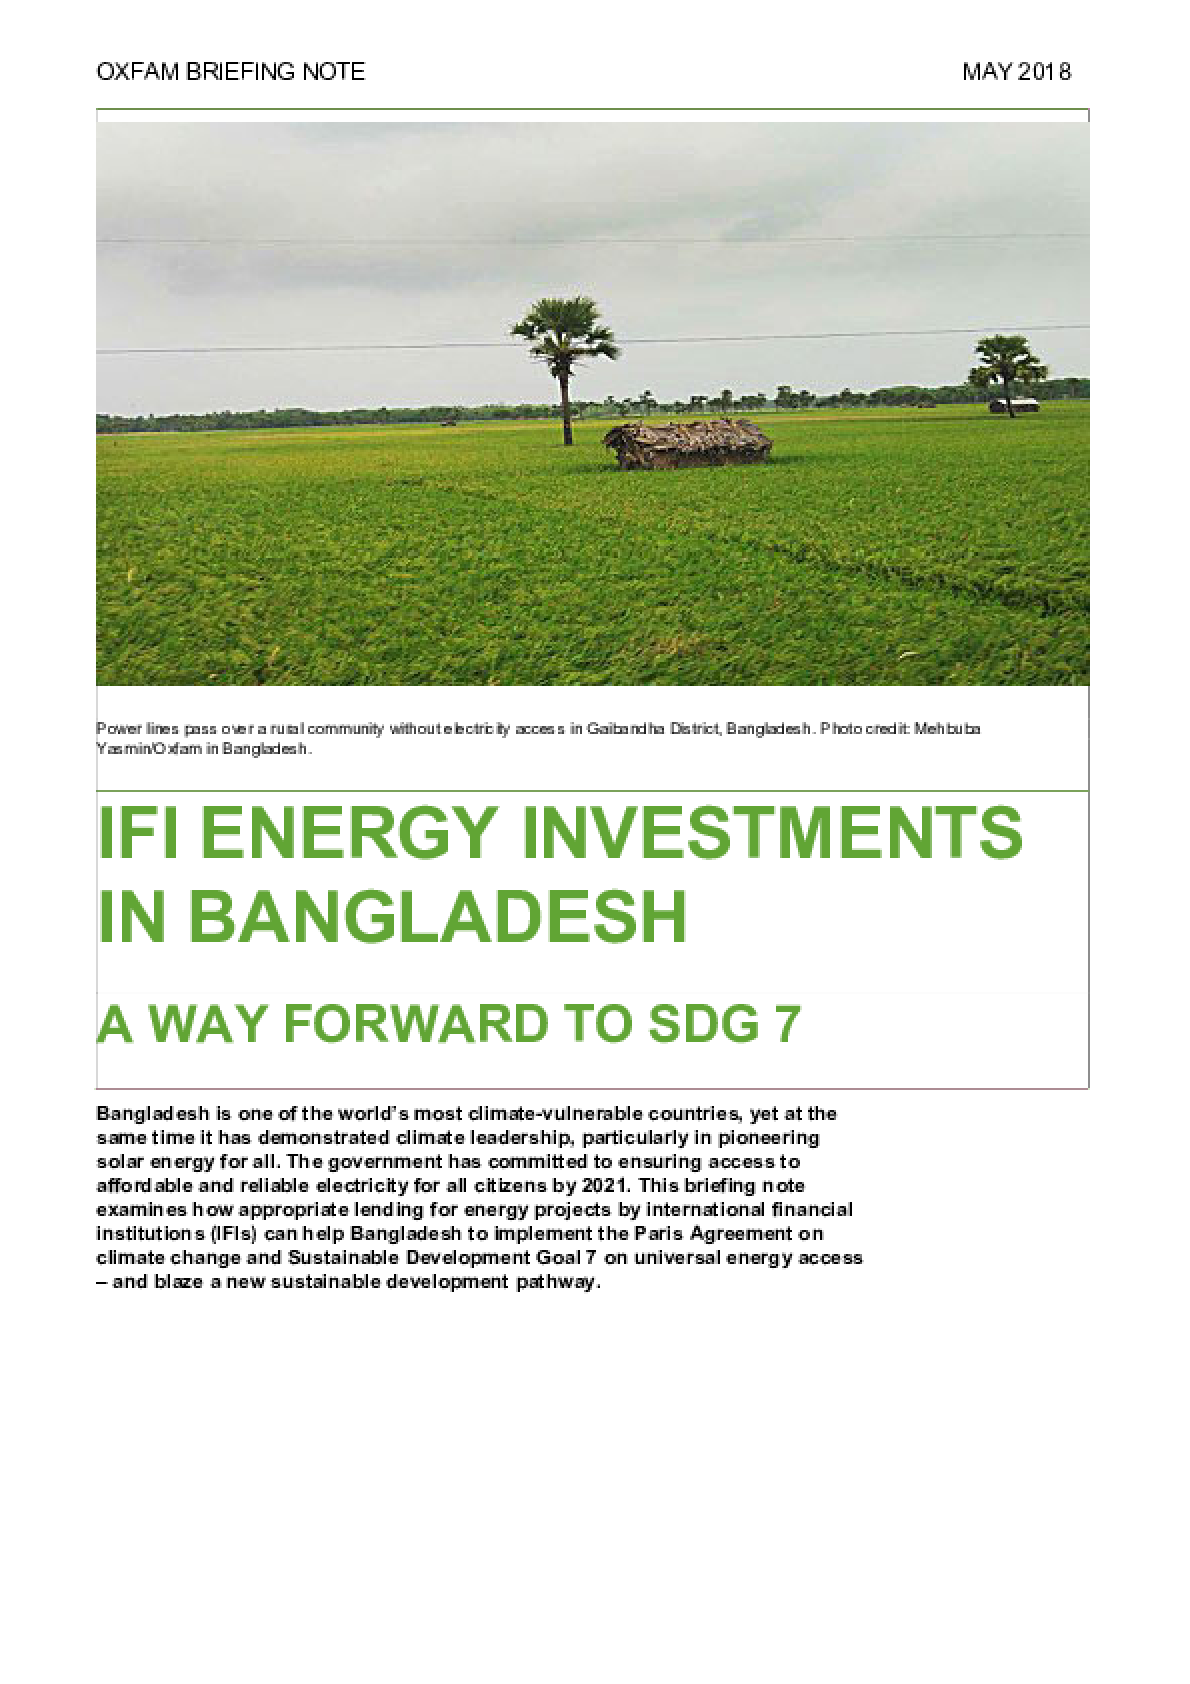 IFI Energy Investments in Bangladesh: A way forward to SDG 7